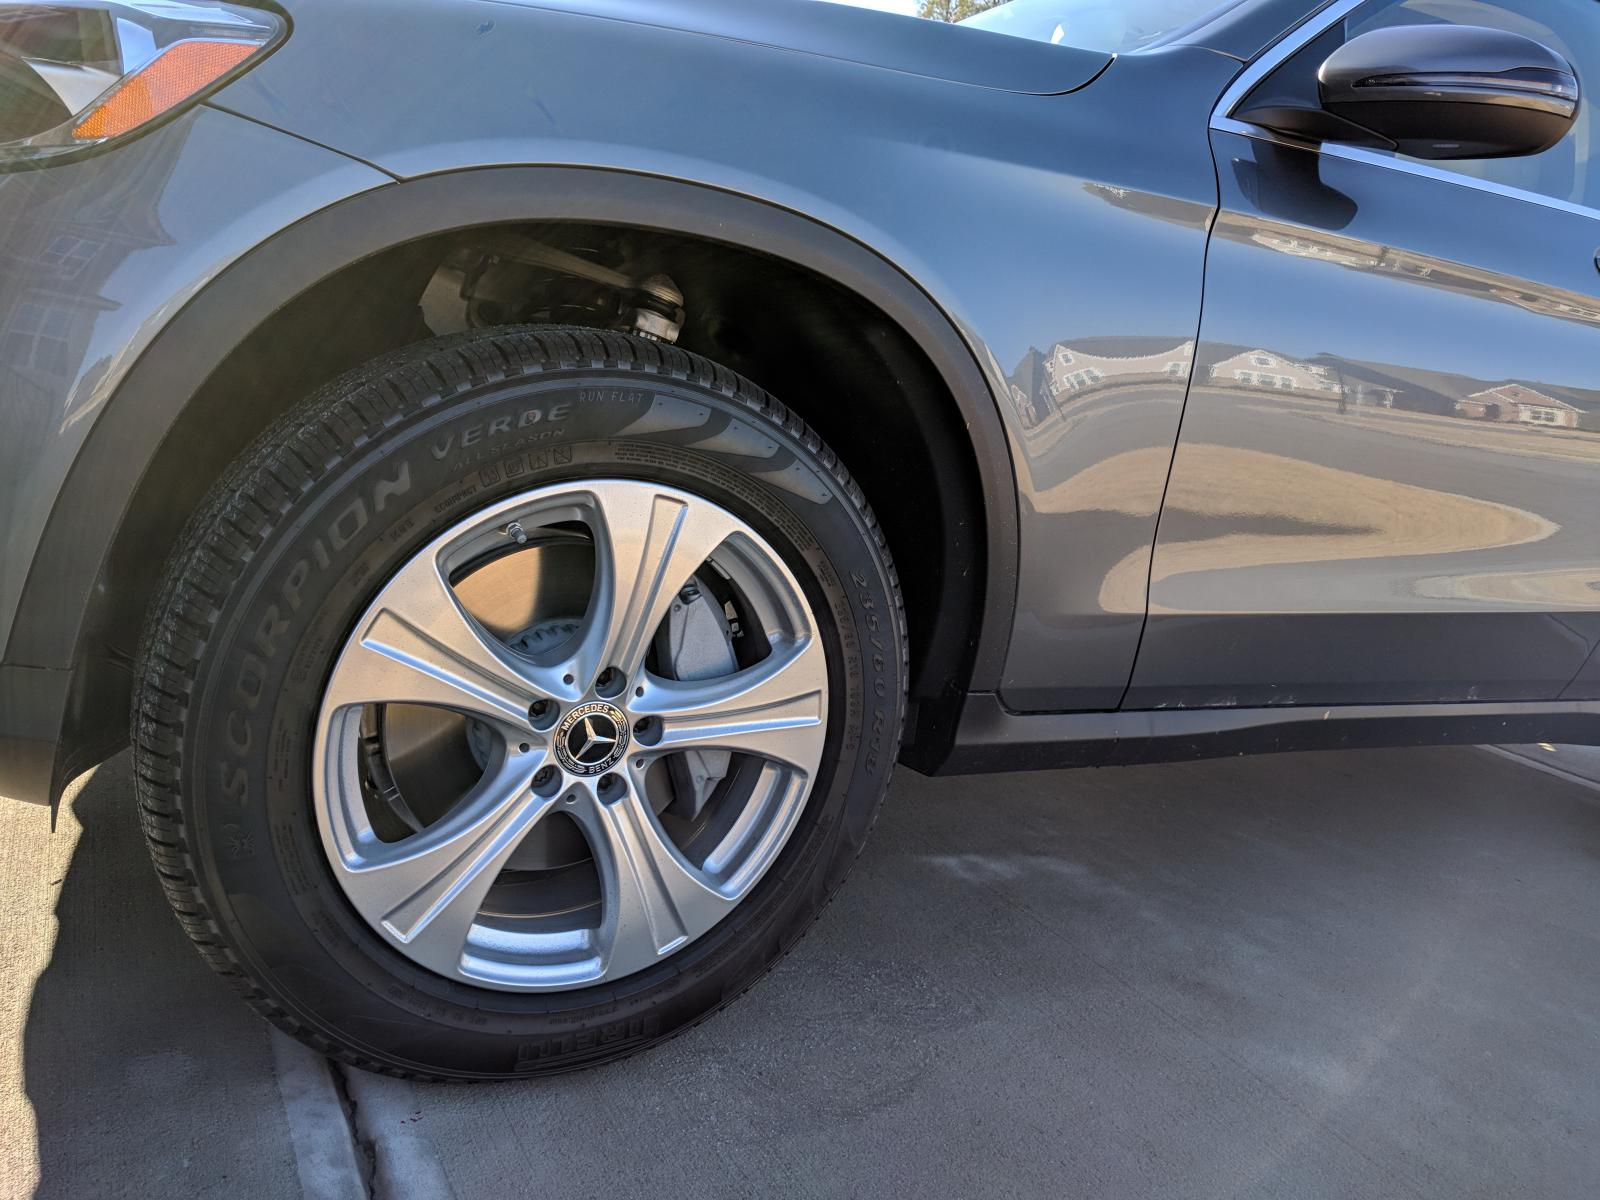 2153d1513189164-part-numbers-spare-tire-tools-new_tire Interesting Info About Glc forum